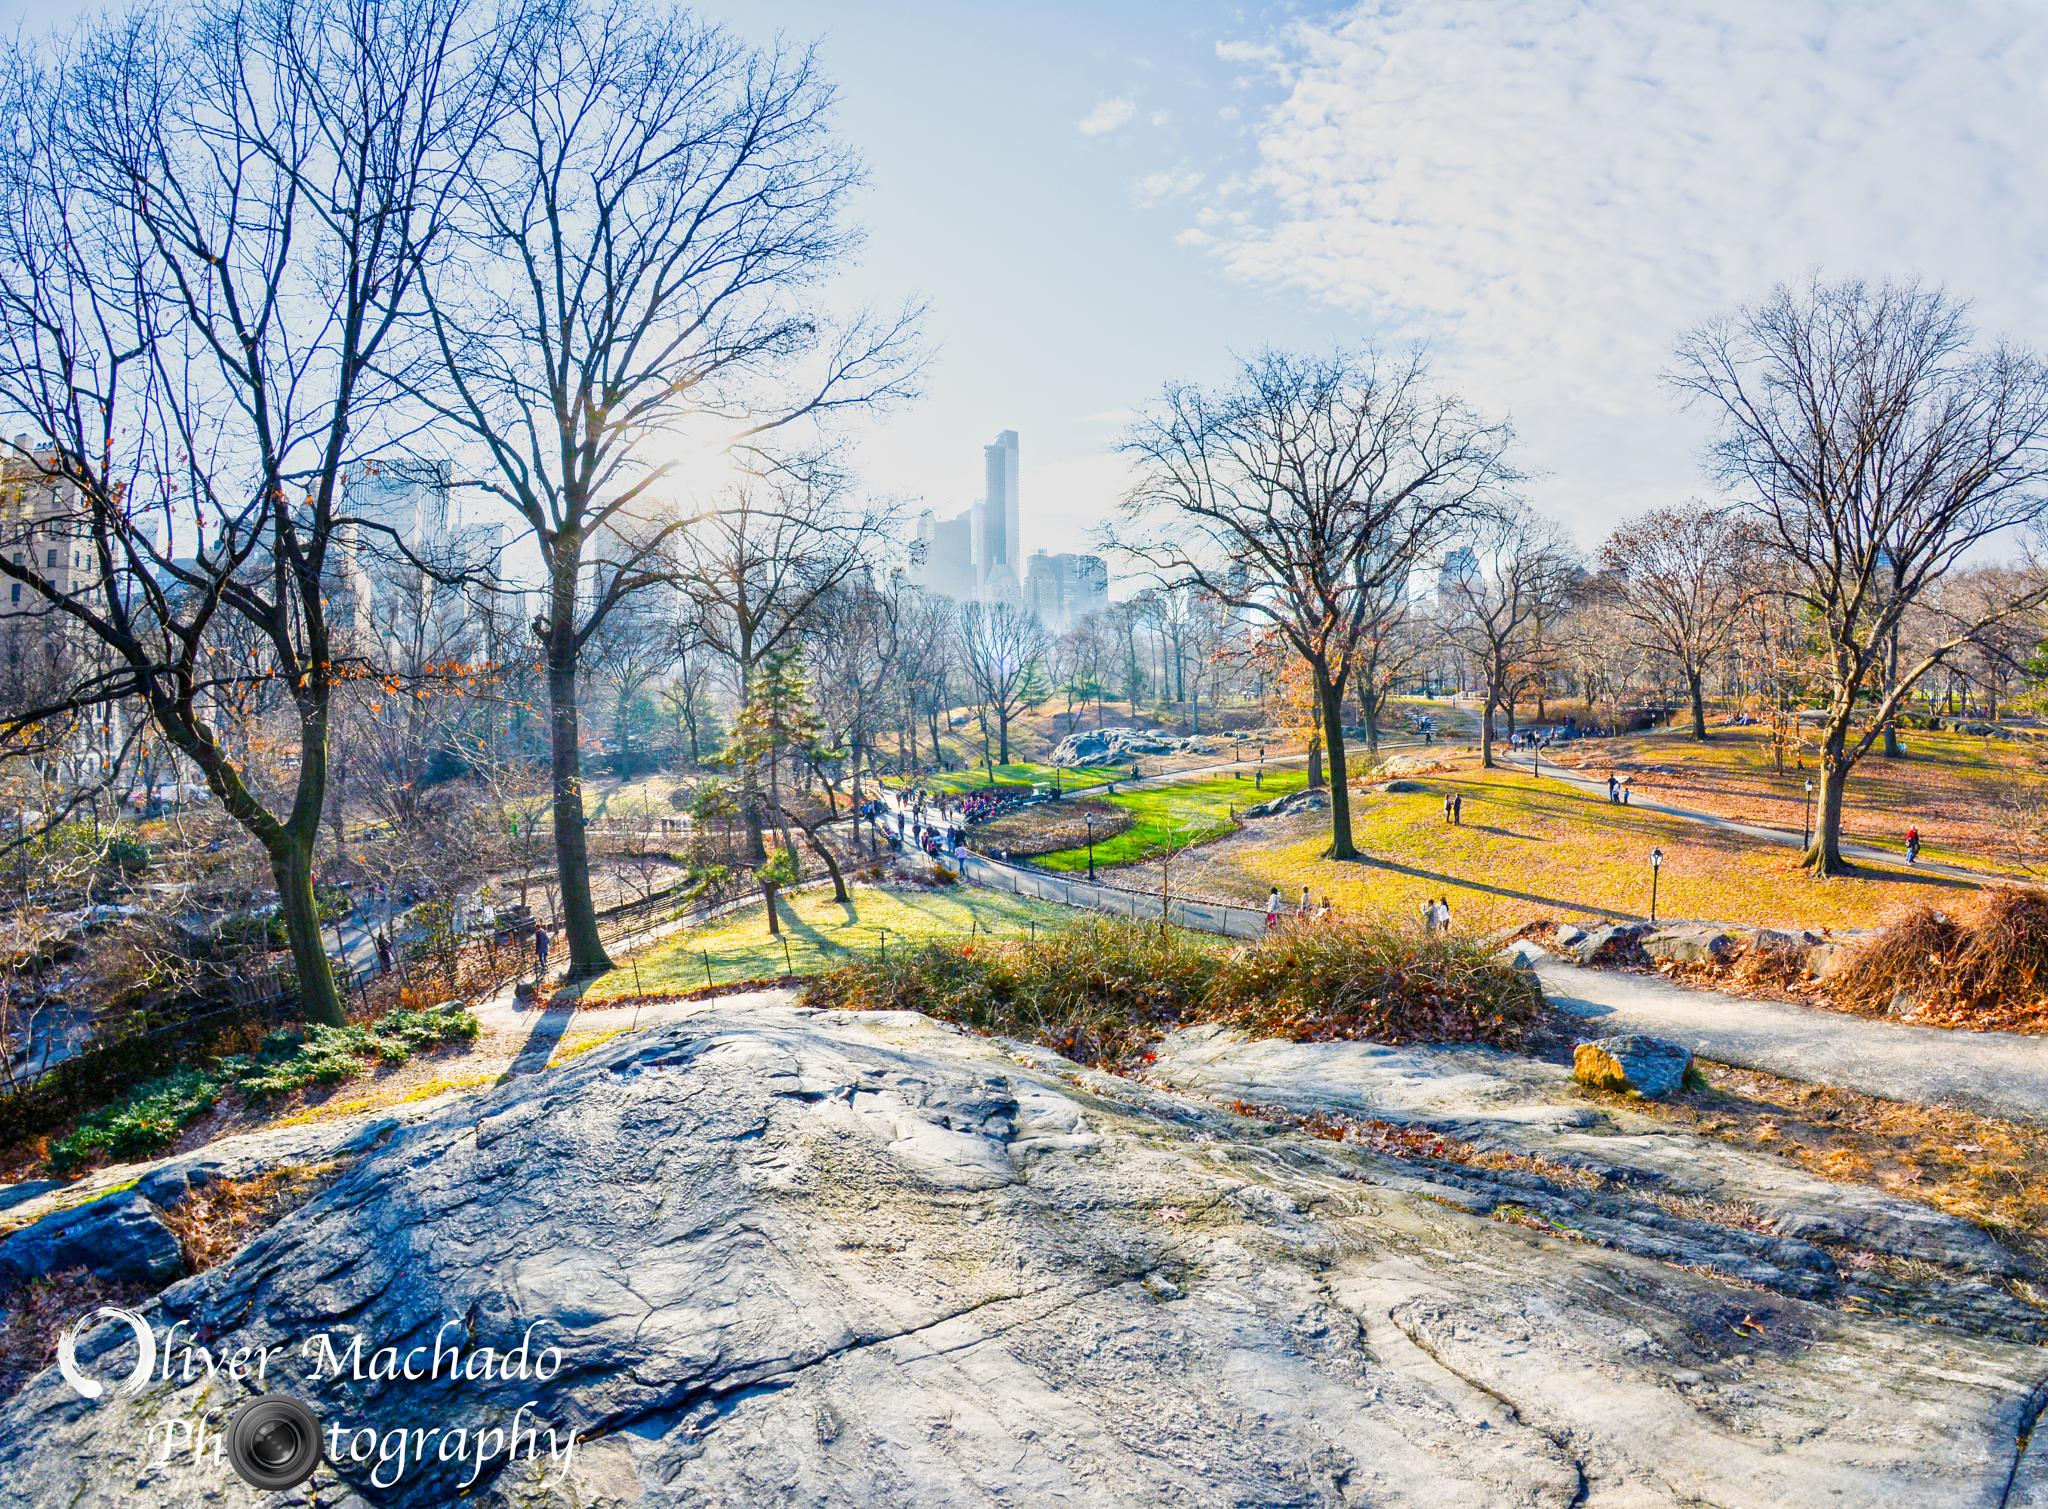 View of New York City from Central Park by Oliver Machado